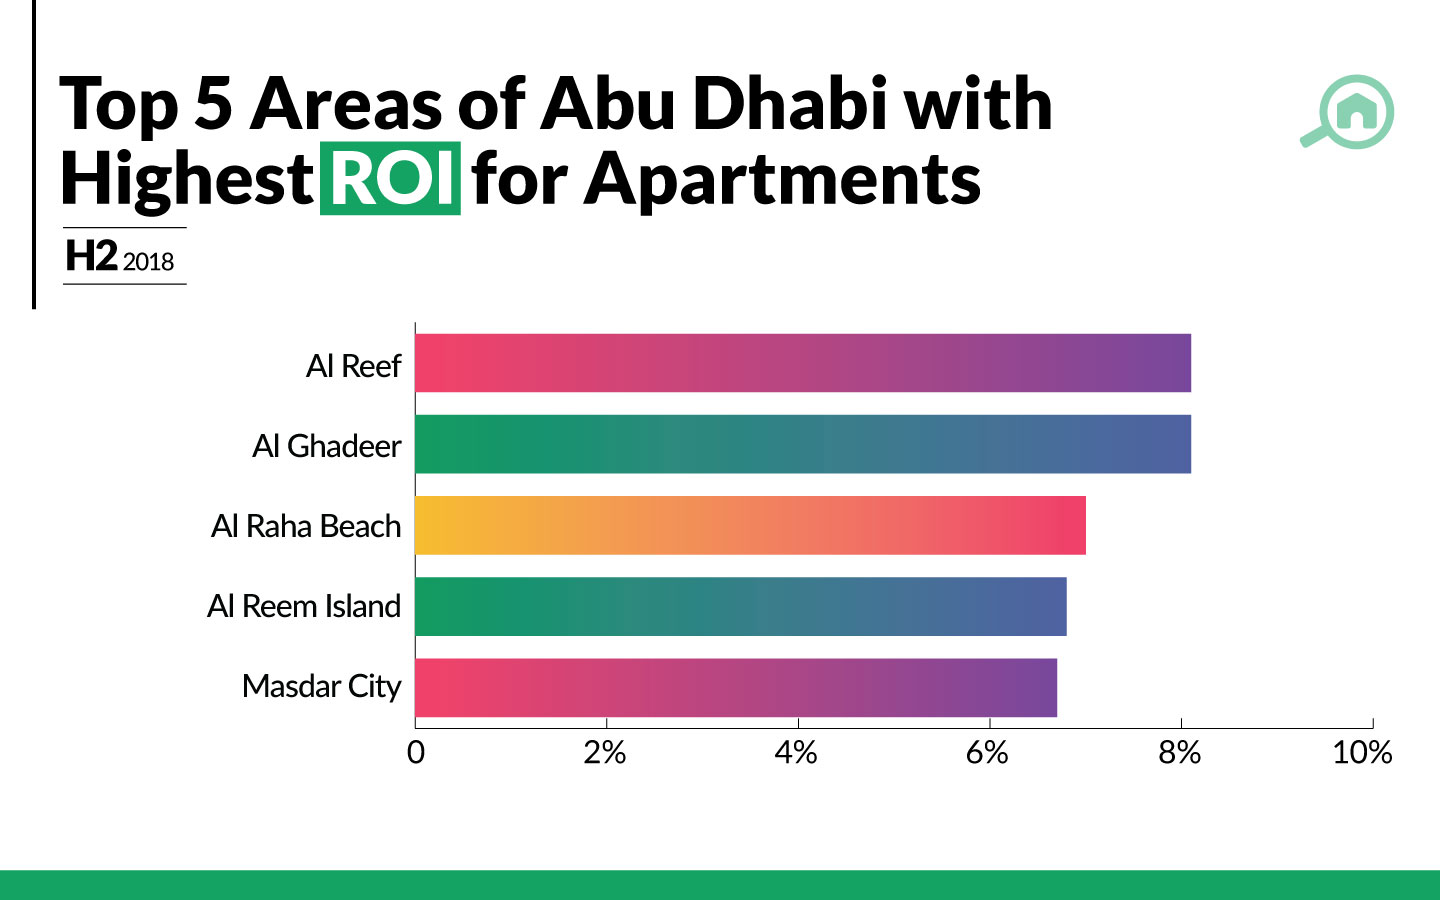 ROIs for the most popular areas to buy apartments in Abu Dhabi